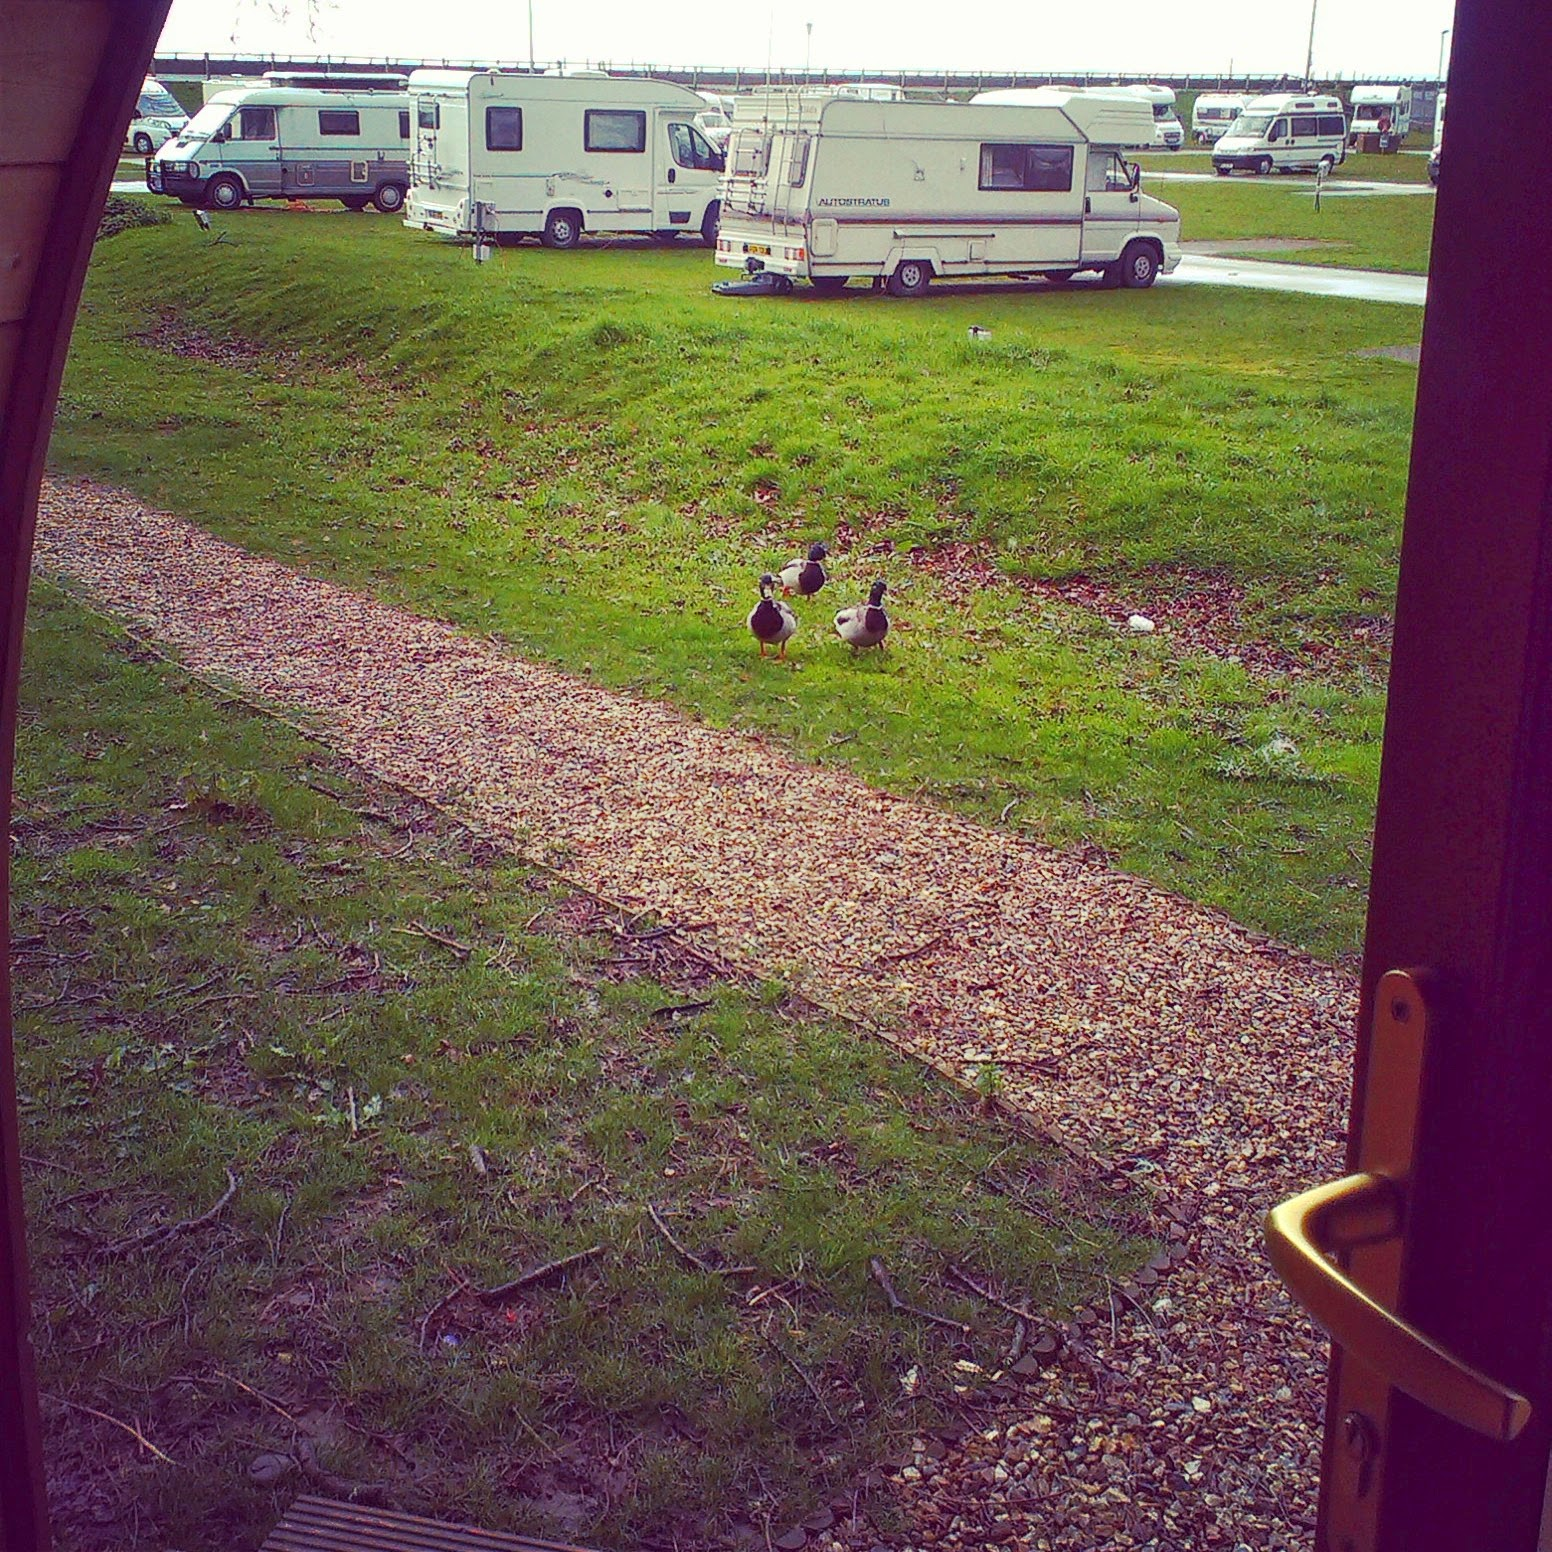 Ducks at the holiday chalet